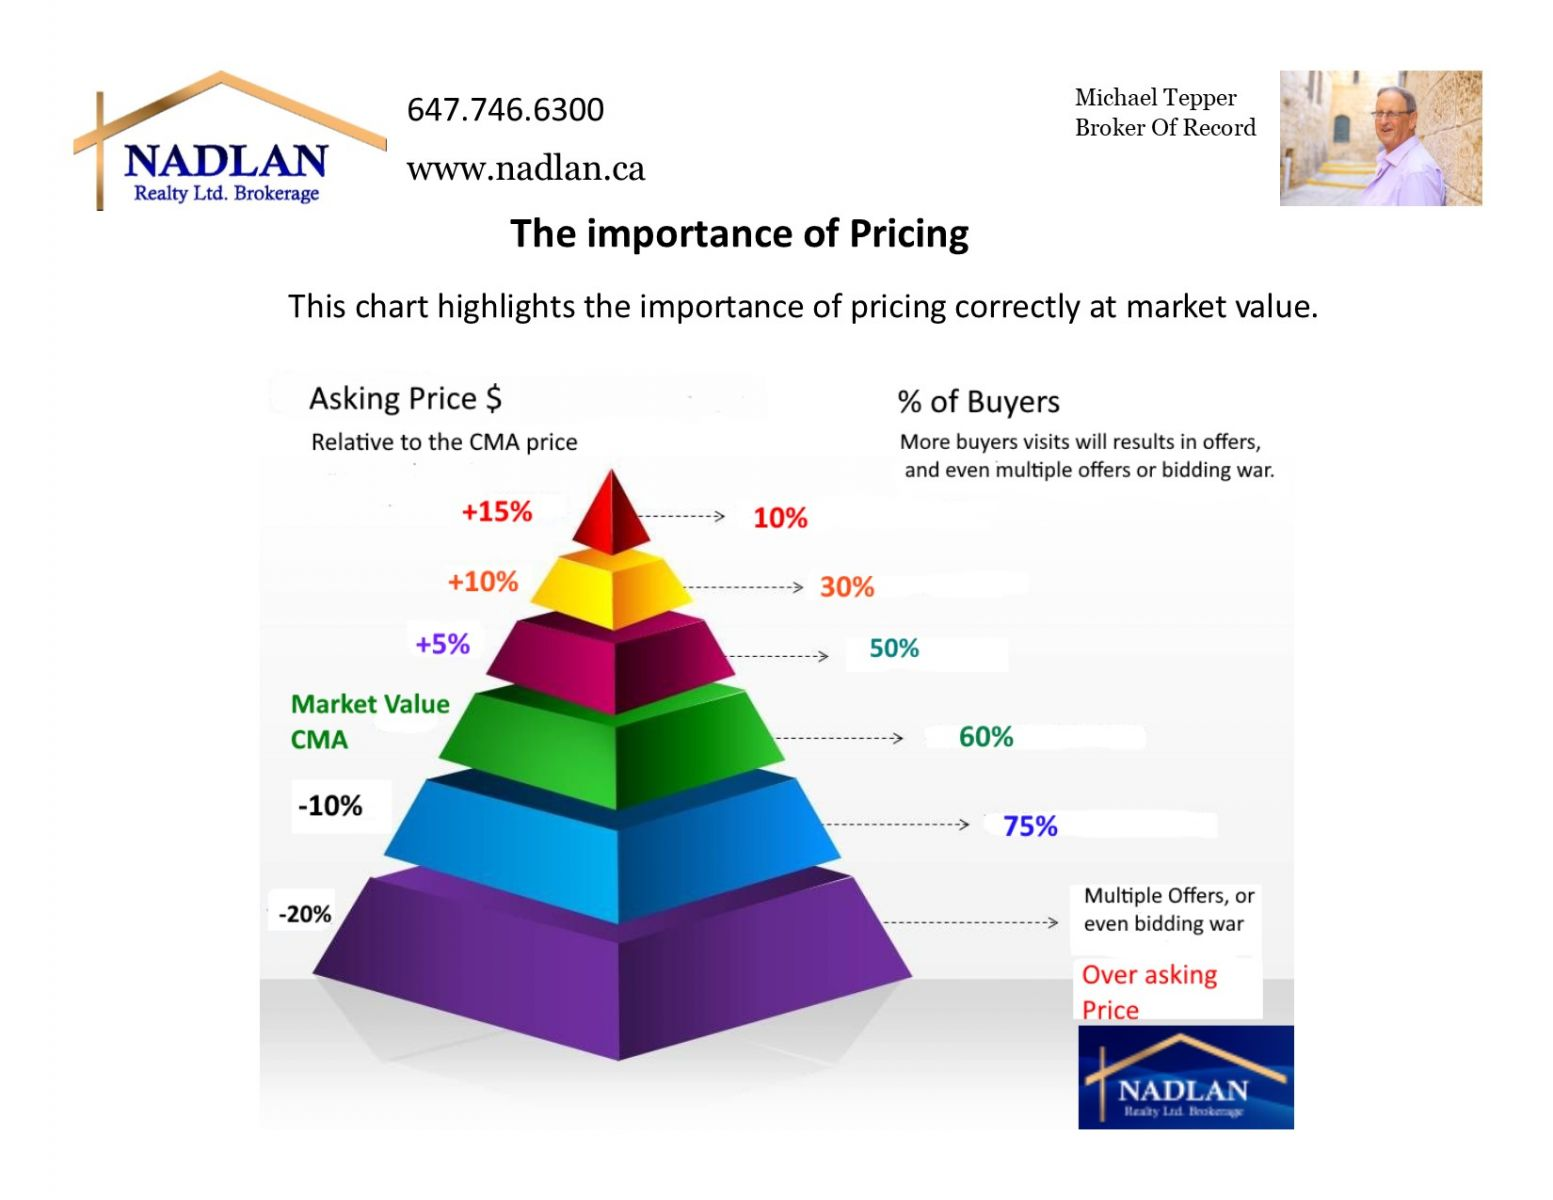 MLS listing price and CMA  market value